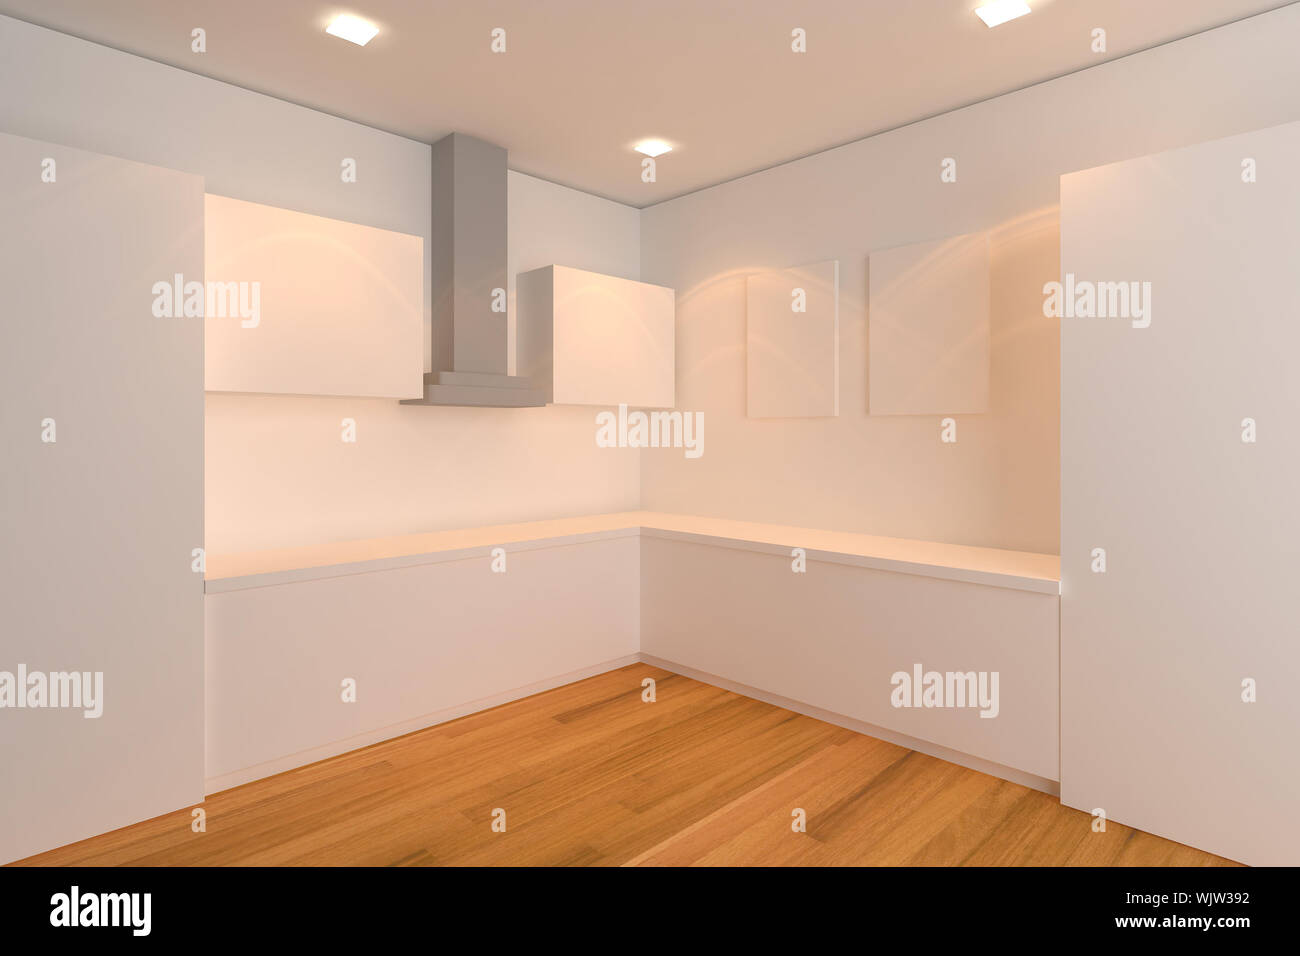 empty interior design for kitchen room with white wall Stock Photo